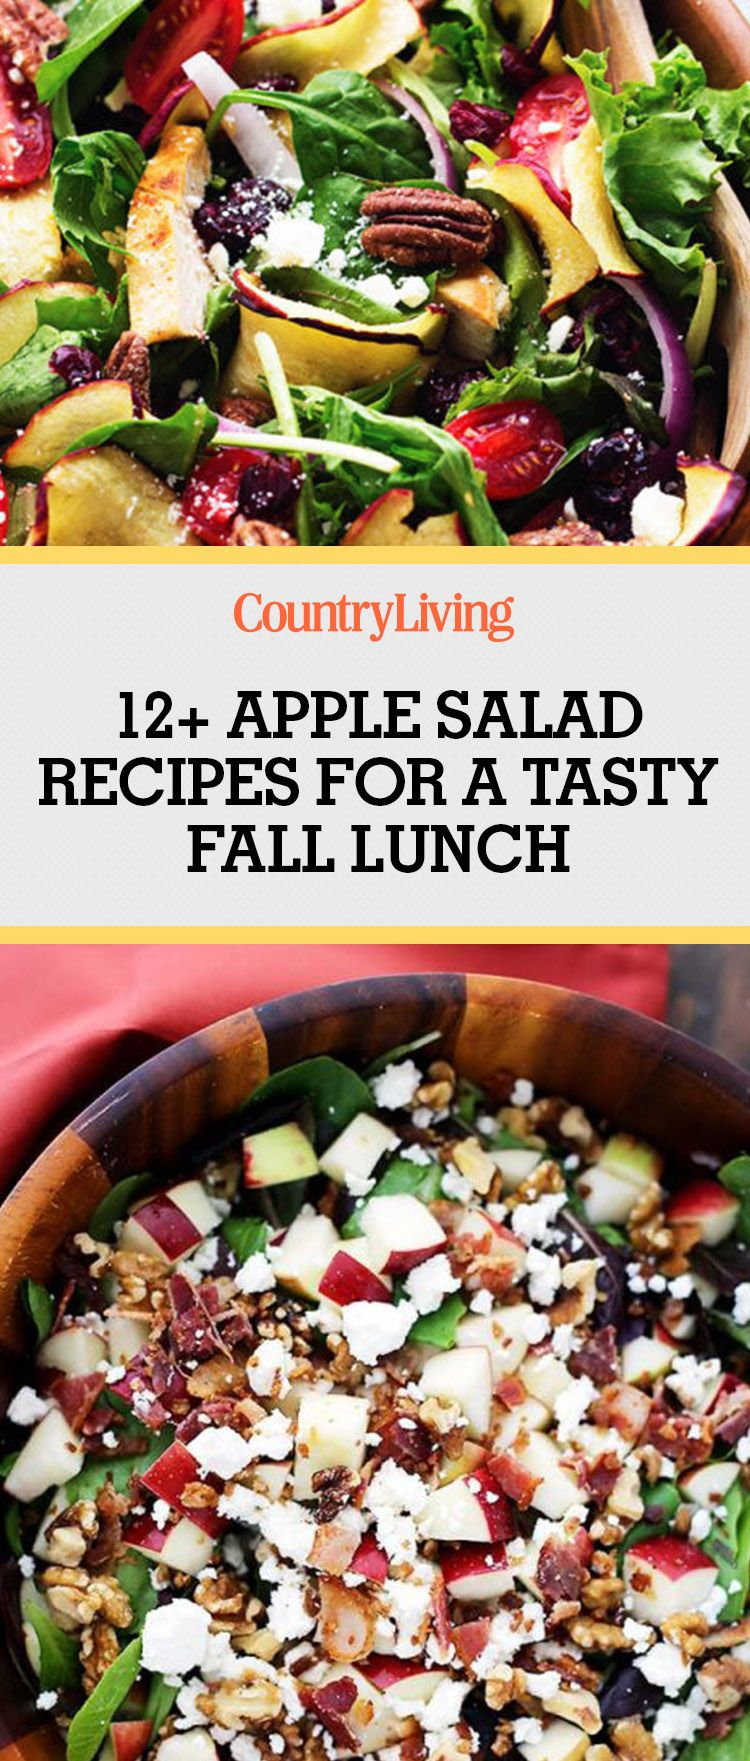 16 Best Apple Salad Recipes - Easy Fall Salads with Apples